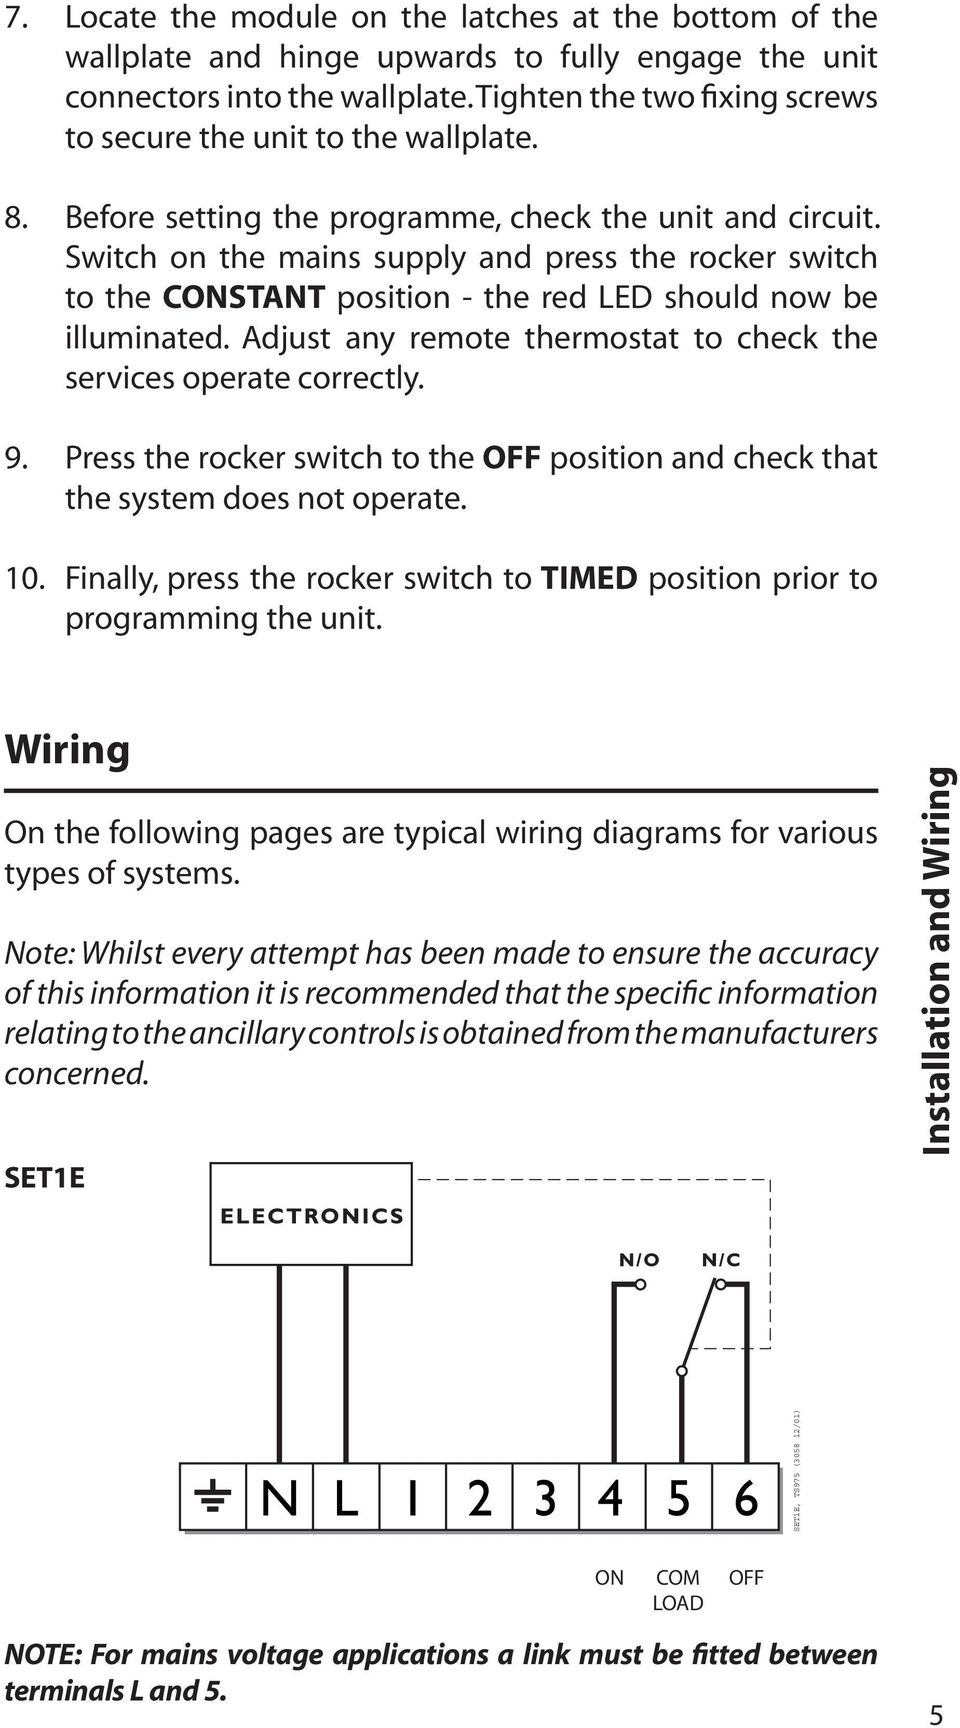 Set1e installation user instructions electronic timeswitch for switch on the mains supply and press the rocker switch to the constant position the freerunsca Images